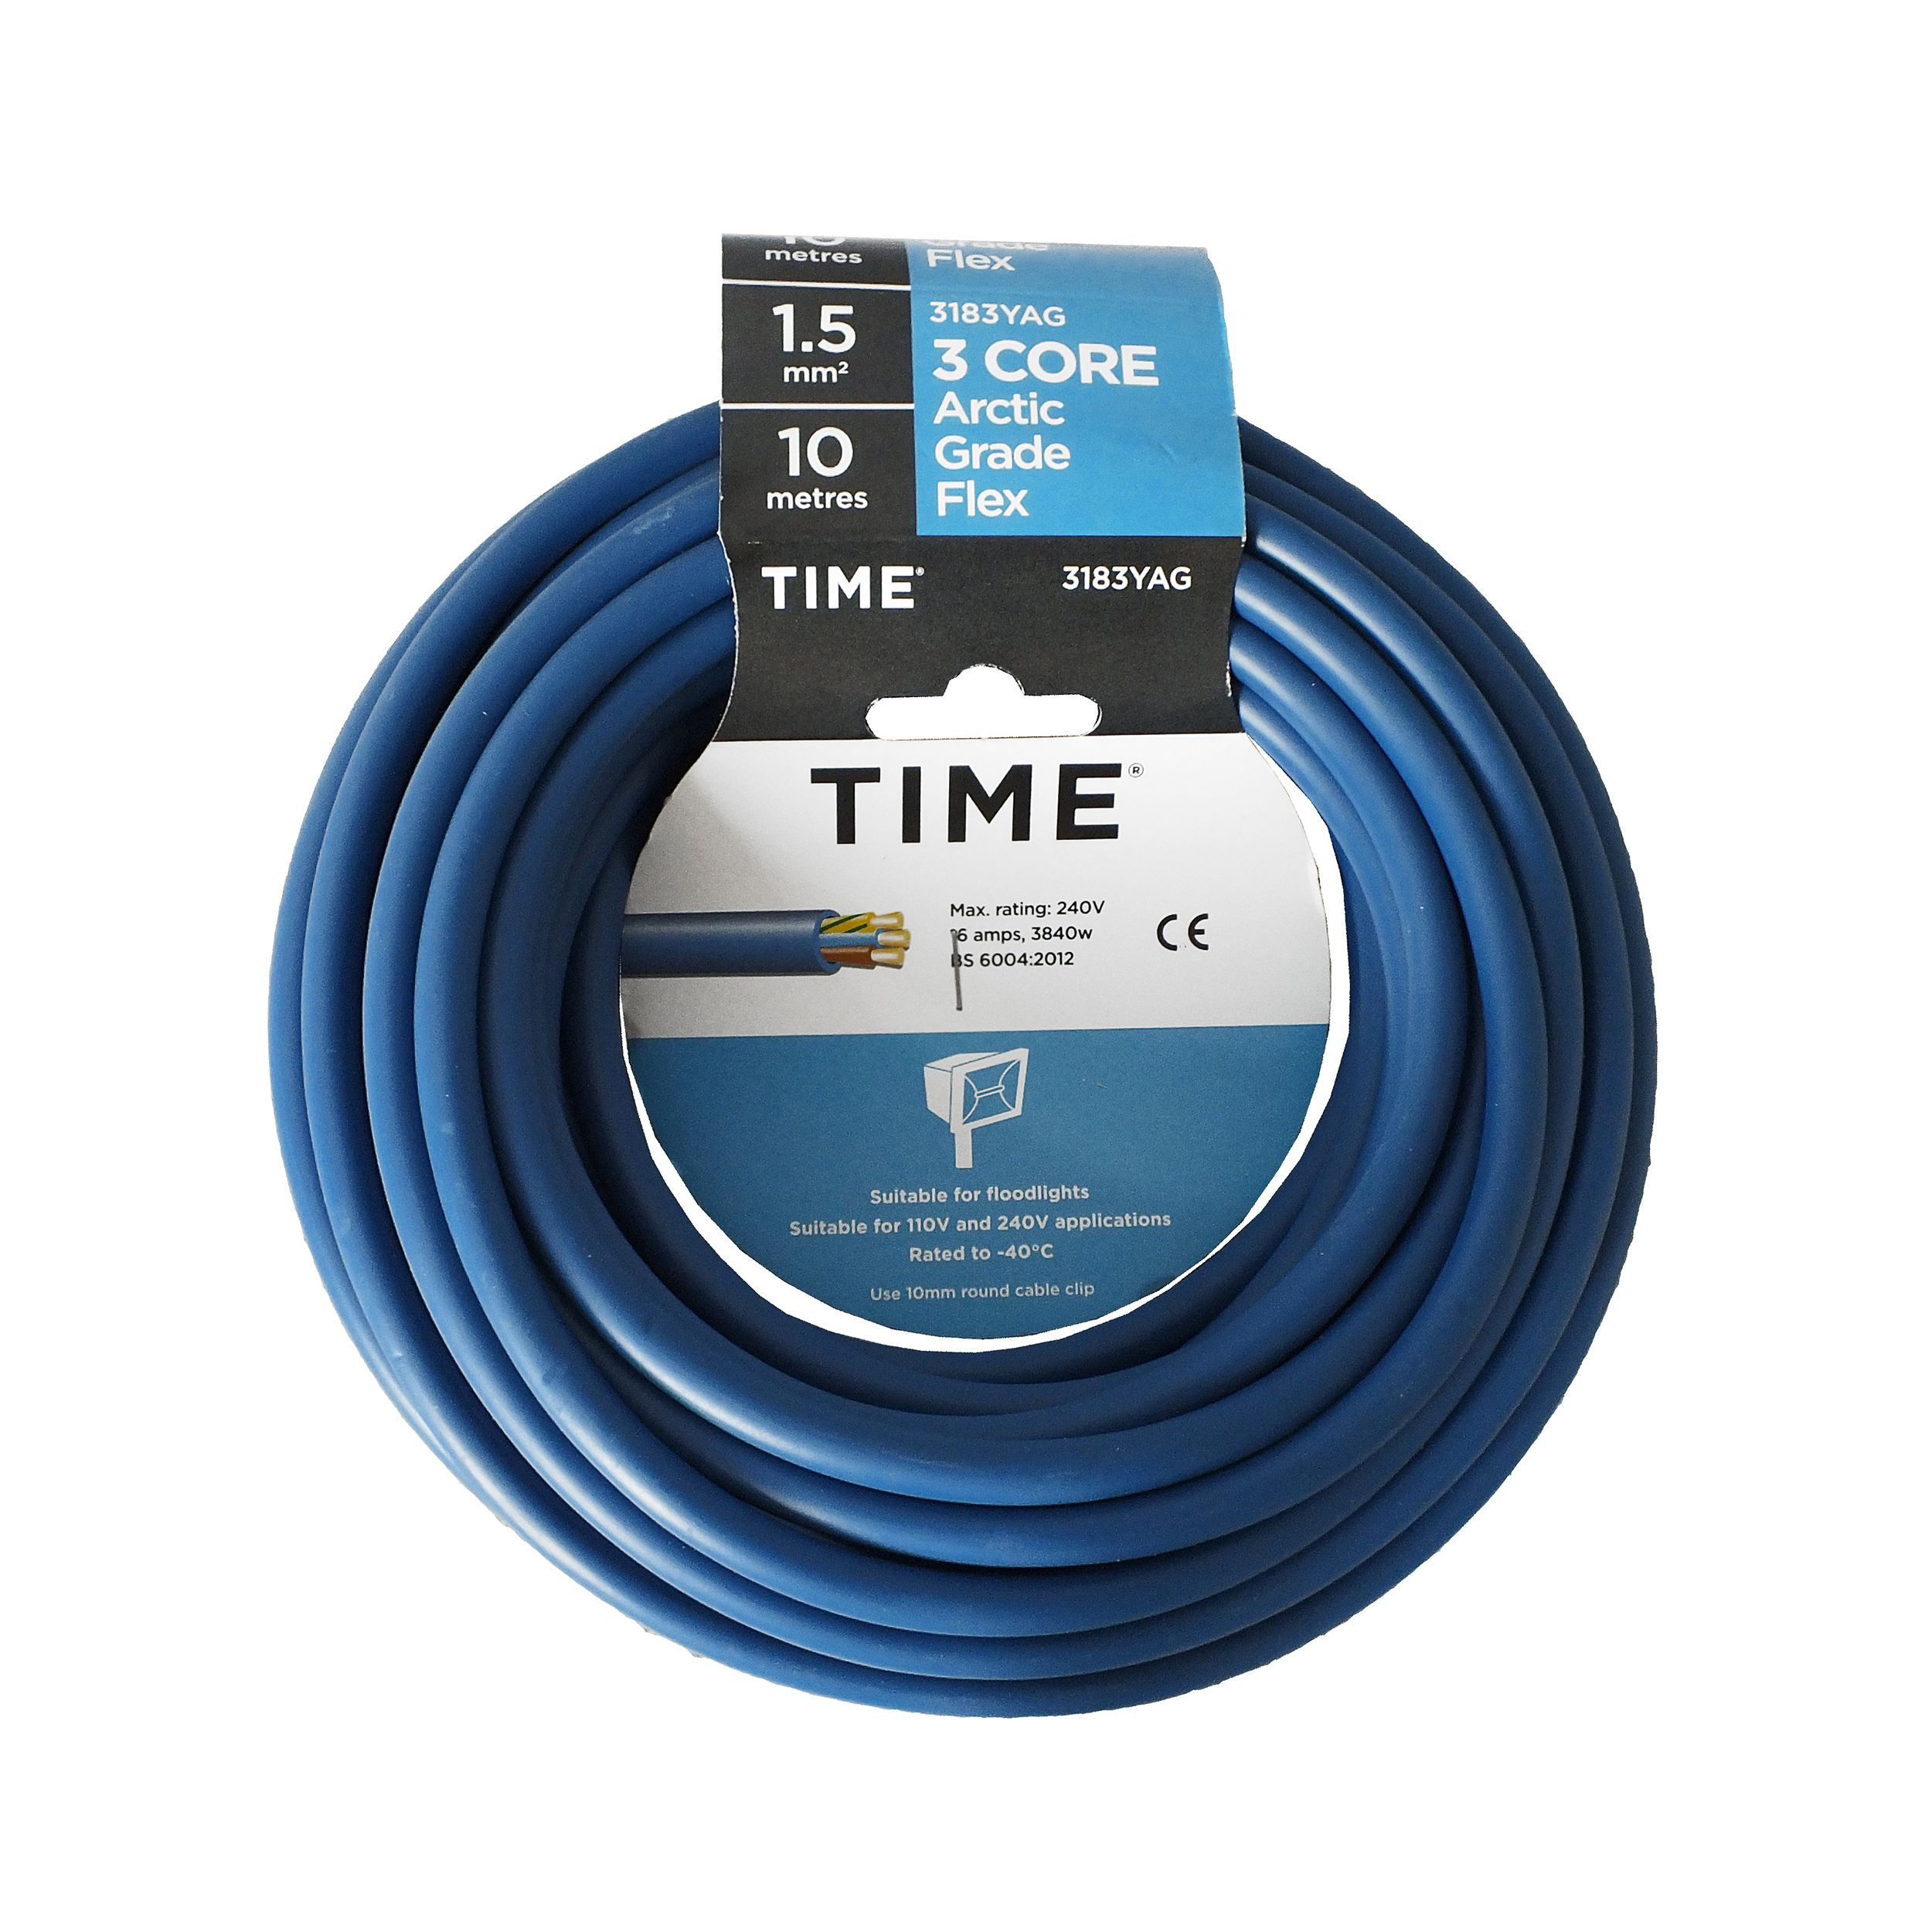 Time 3 Core Arctic Flexible Cable 1.5mm² 3183YA Blue 10m ...